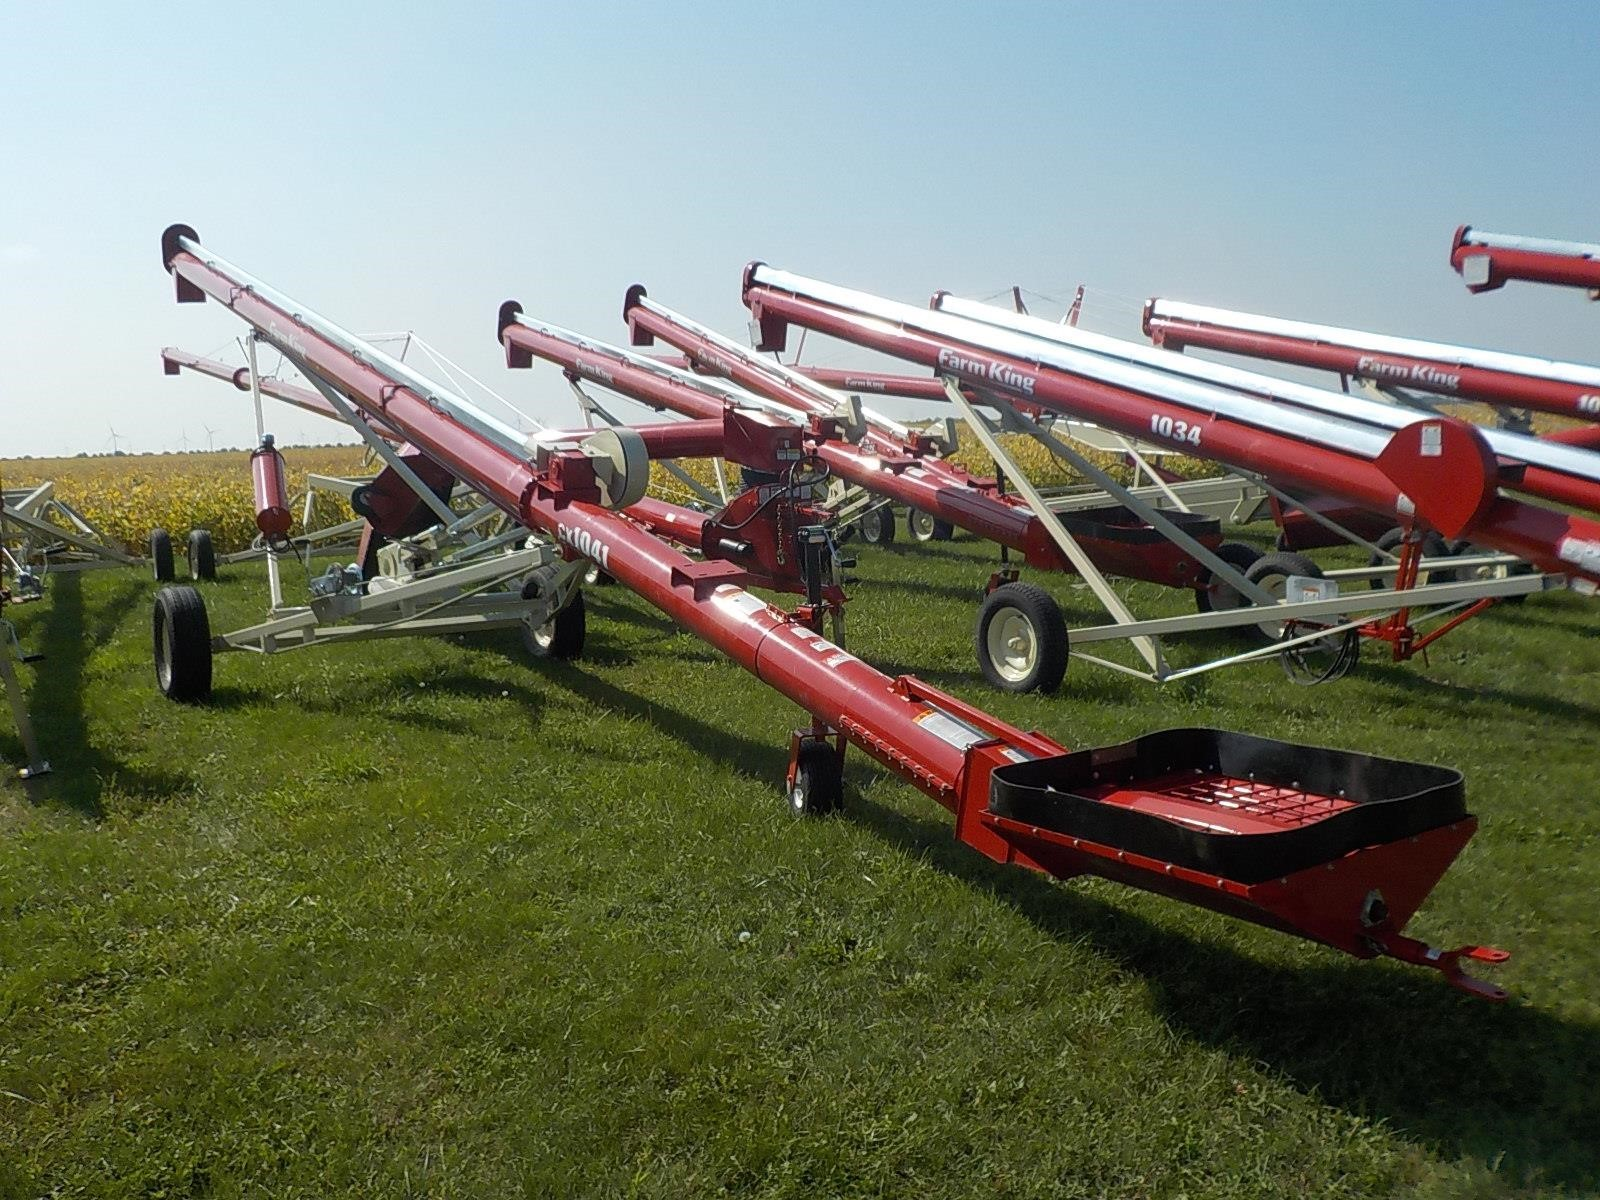 2017 Farm King CX1041 Augers and Conveyor